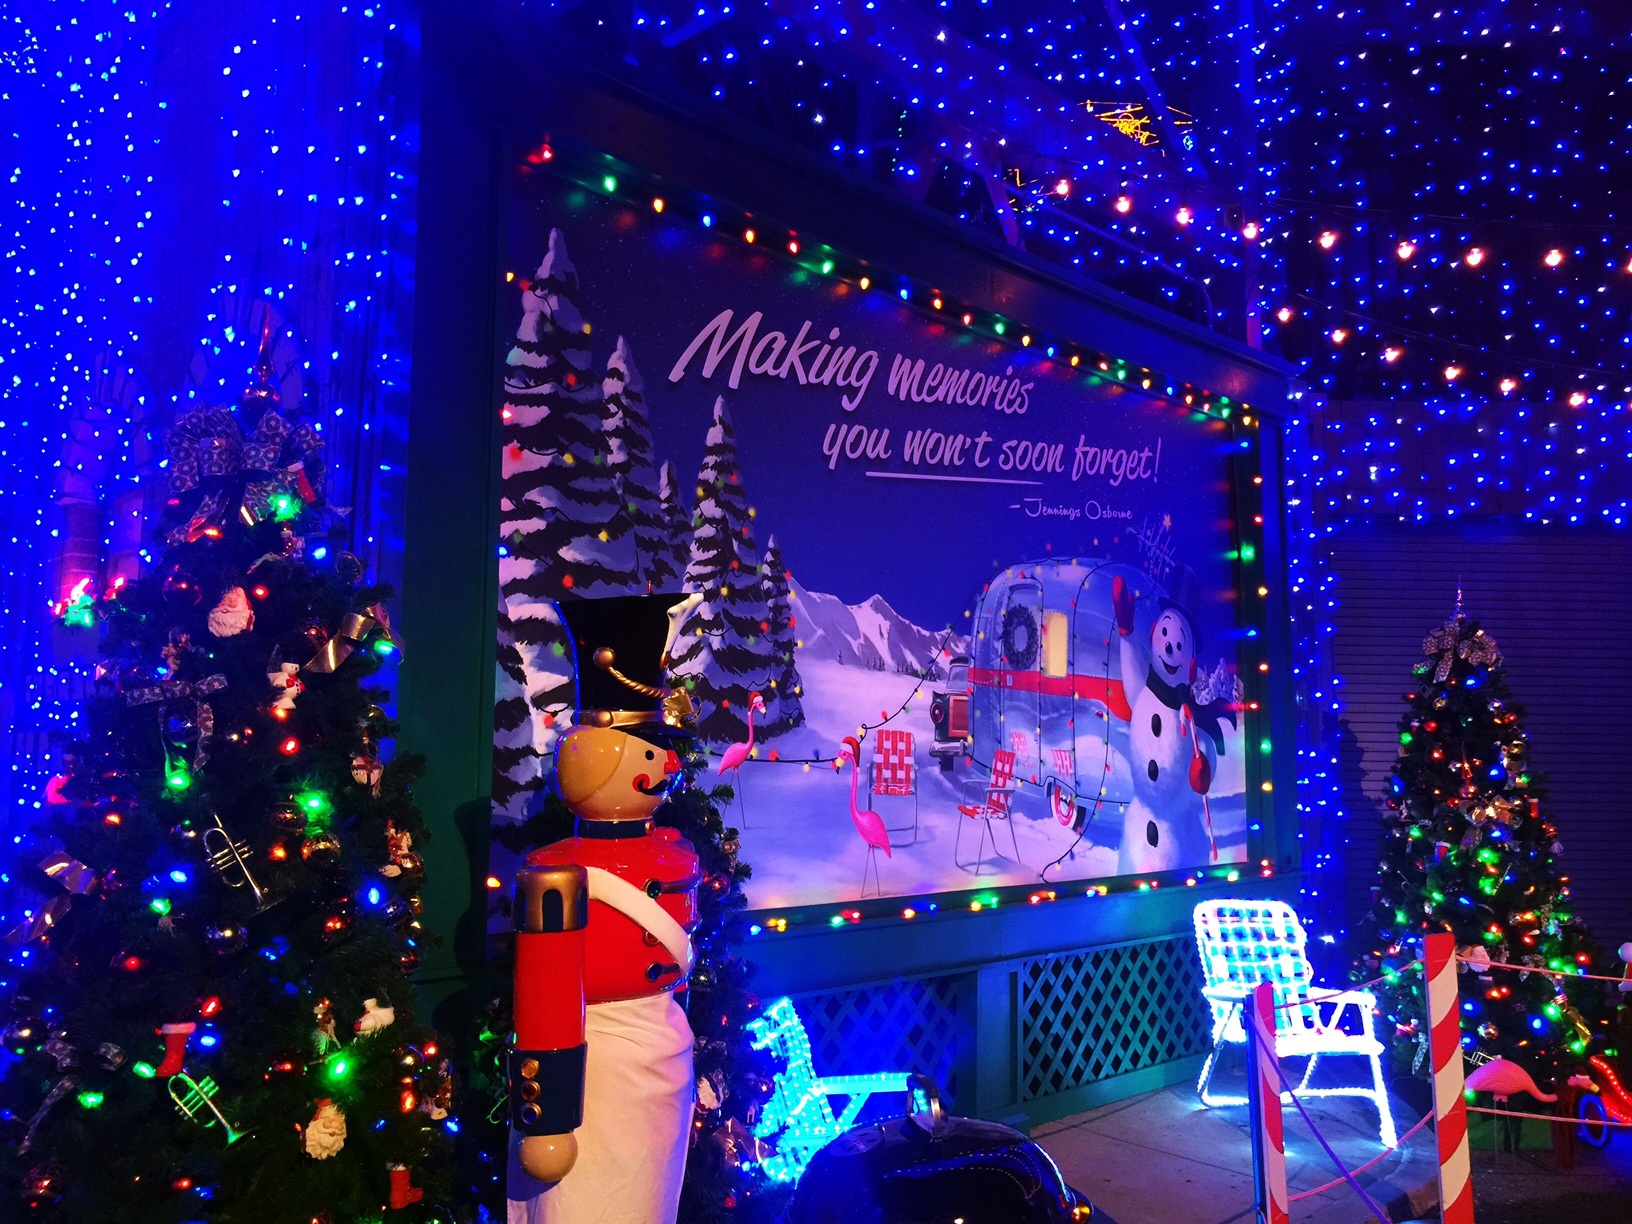 Wordless Wednesday Disney's Hollywood Studios Osborne Family Spectacle of Dancing Lights 2016